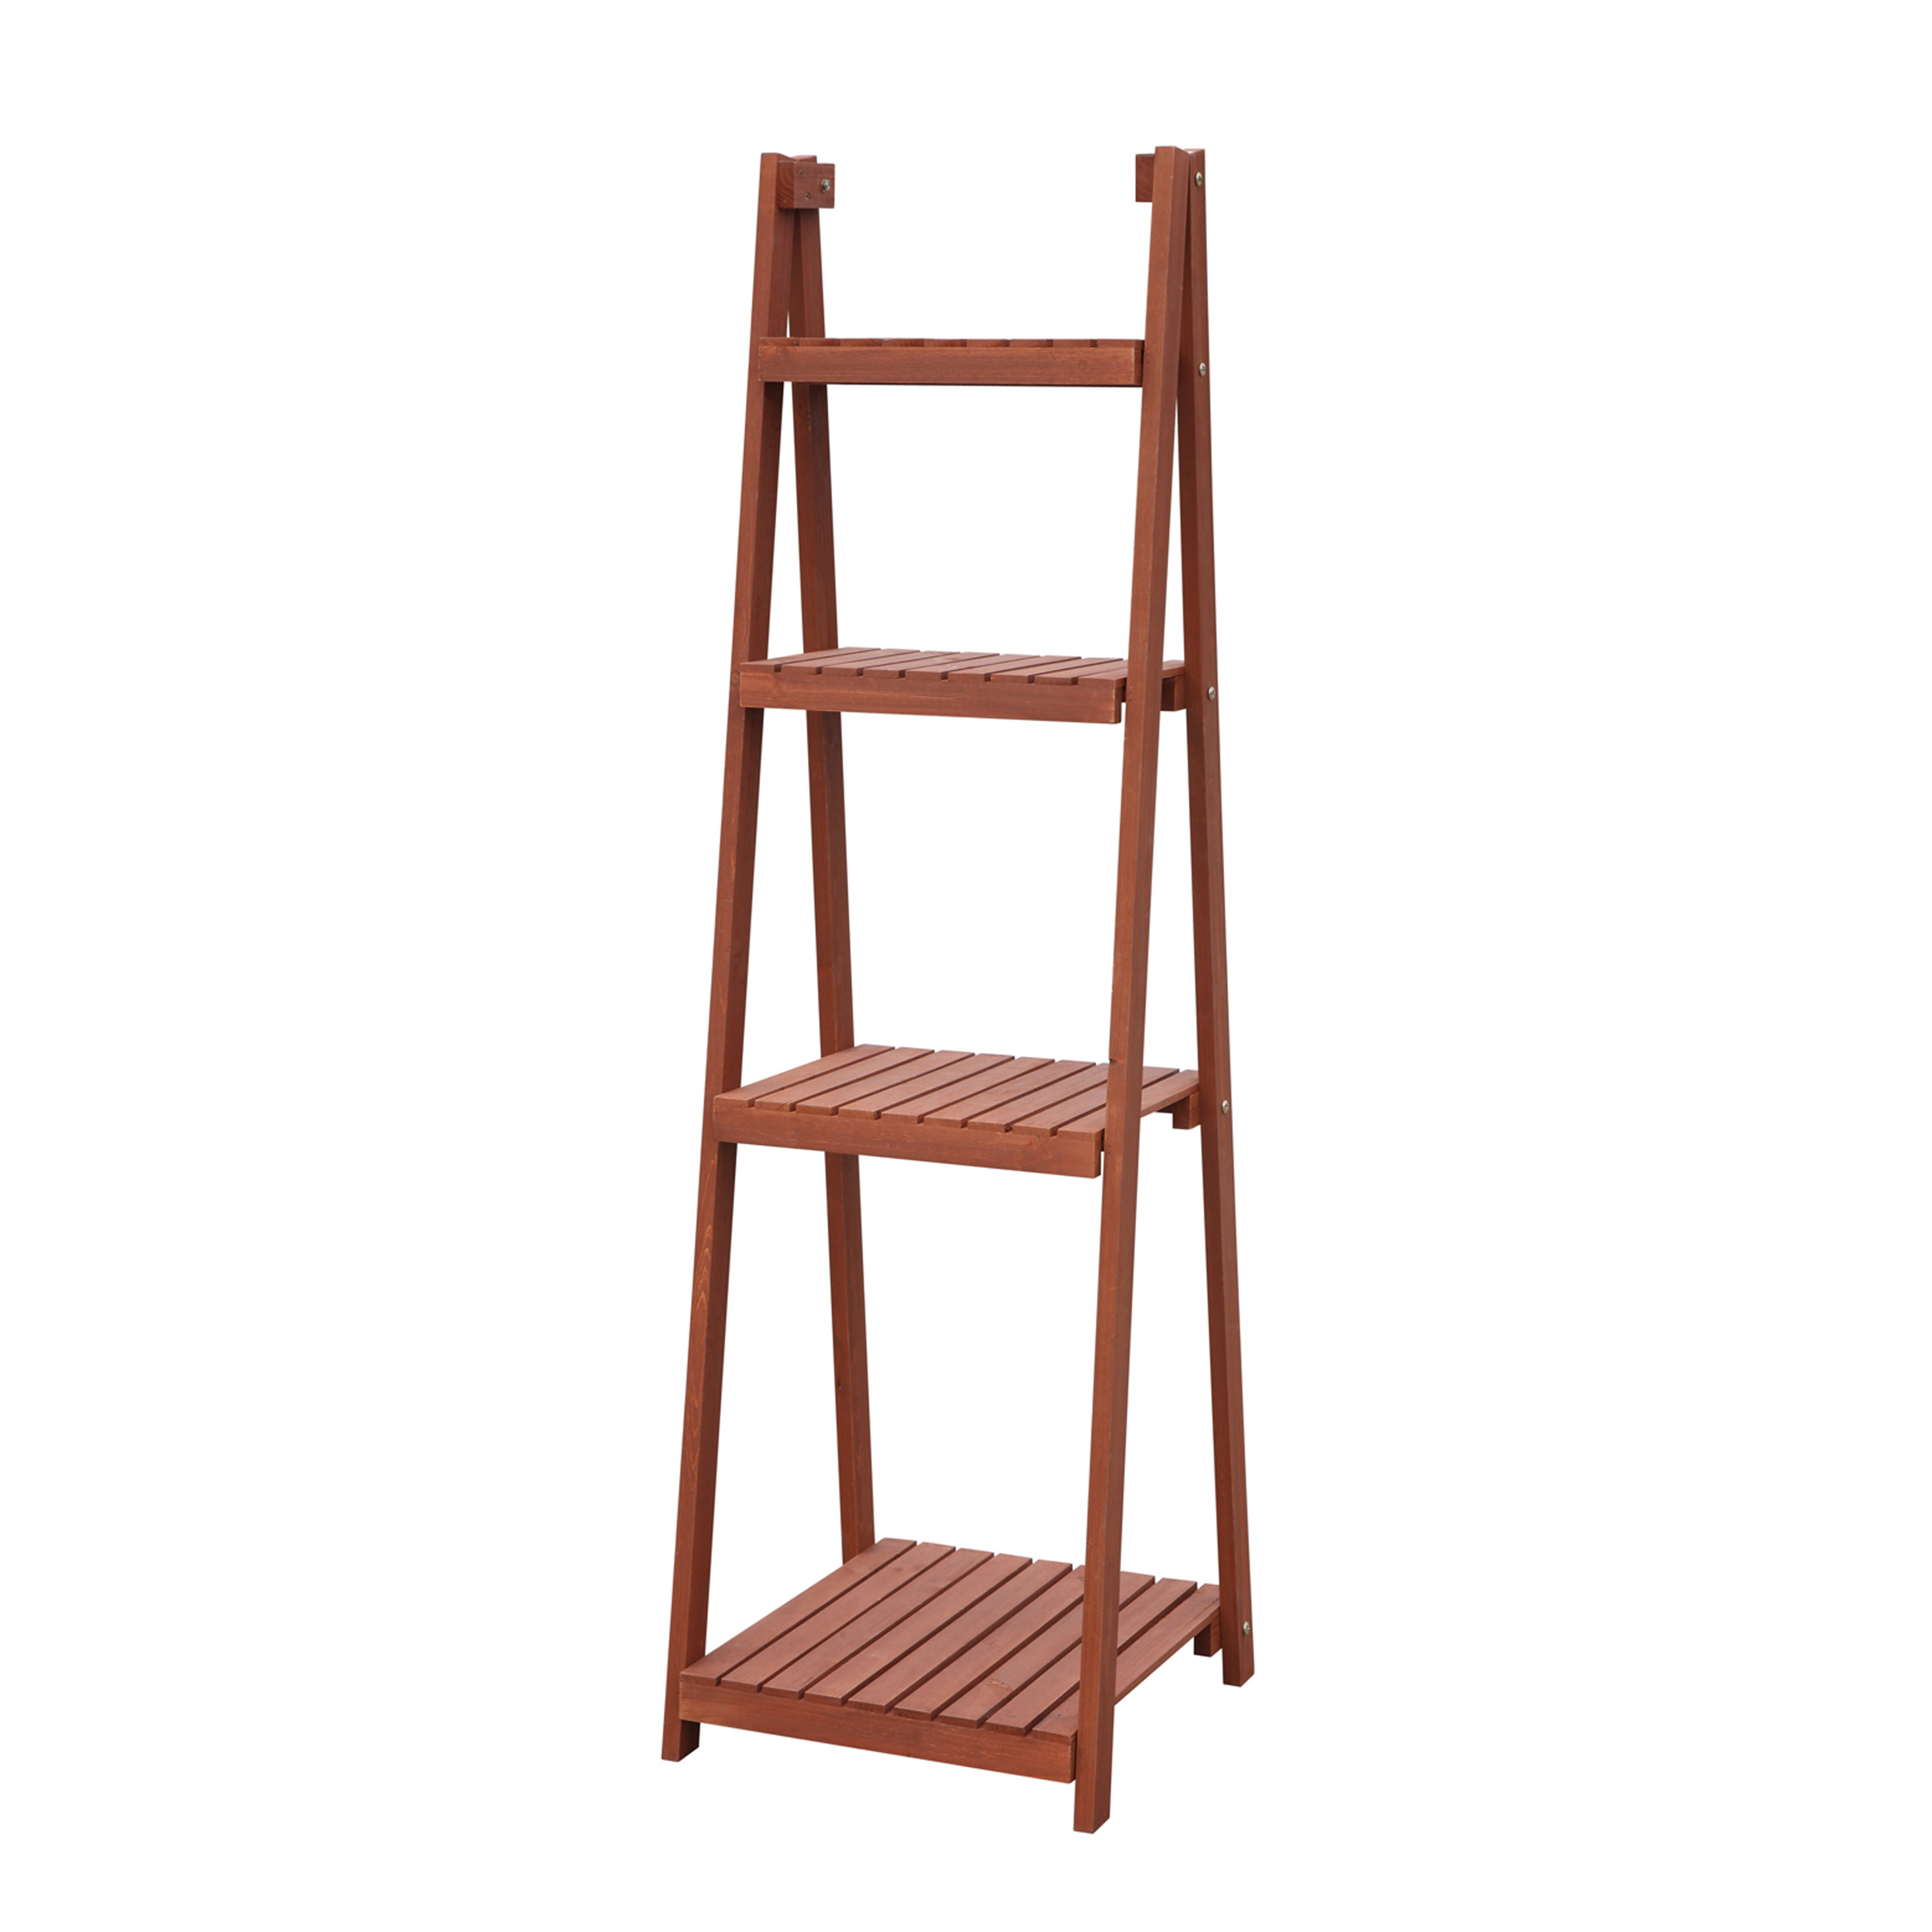 Convenience Concepts Multi Tier Etagere Plant Stand  : Convenience Concepts Multi Tier Etagere Plant Stand G10044 from www.wayfair.com size 4487 x 4487 jpeg 657kB